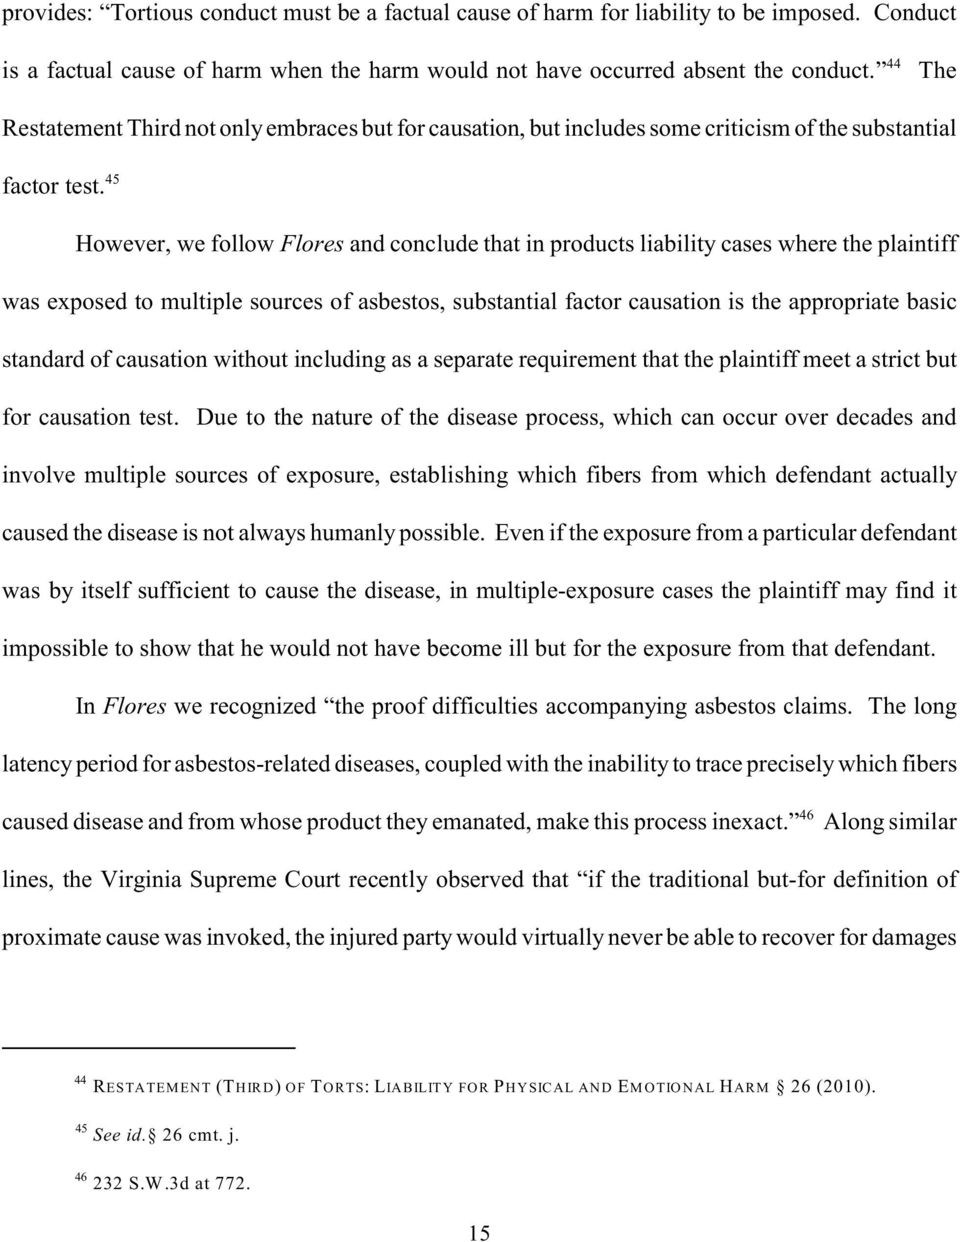 45 However, we follow Flores and conclude that in products liability cases where the plaintiff was exposed to multiple sources of asbestos, substantial factor causation is the appropriate basic